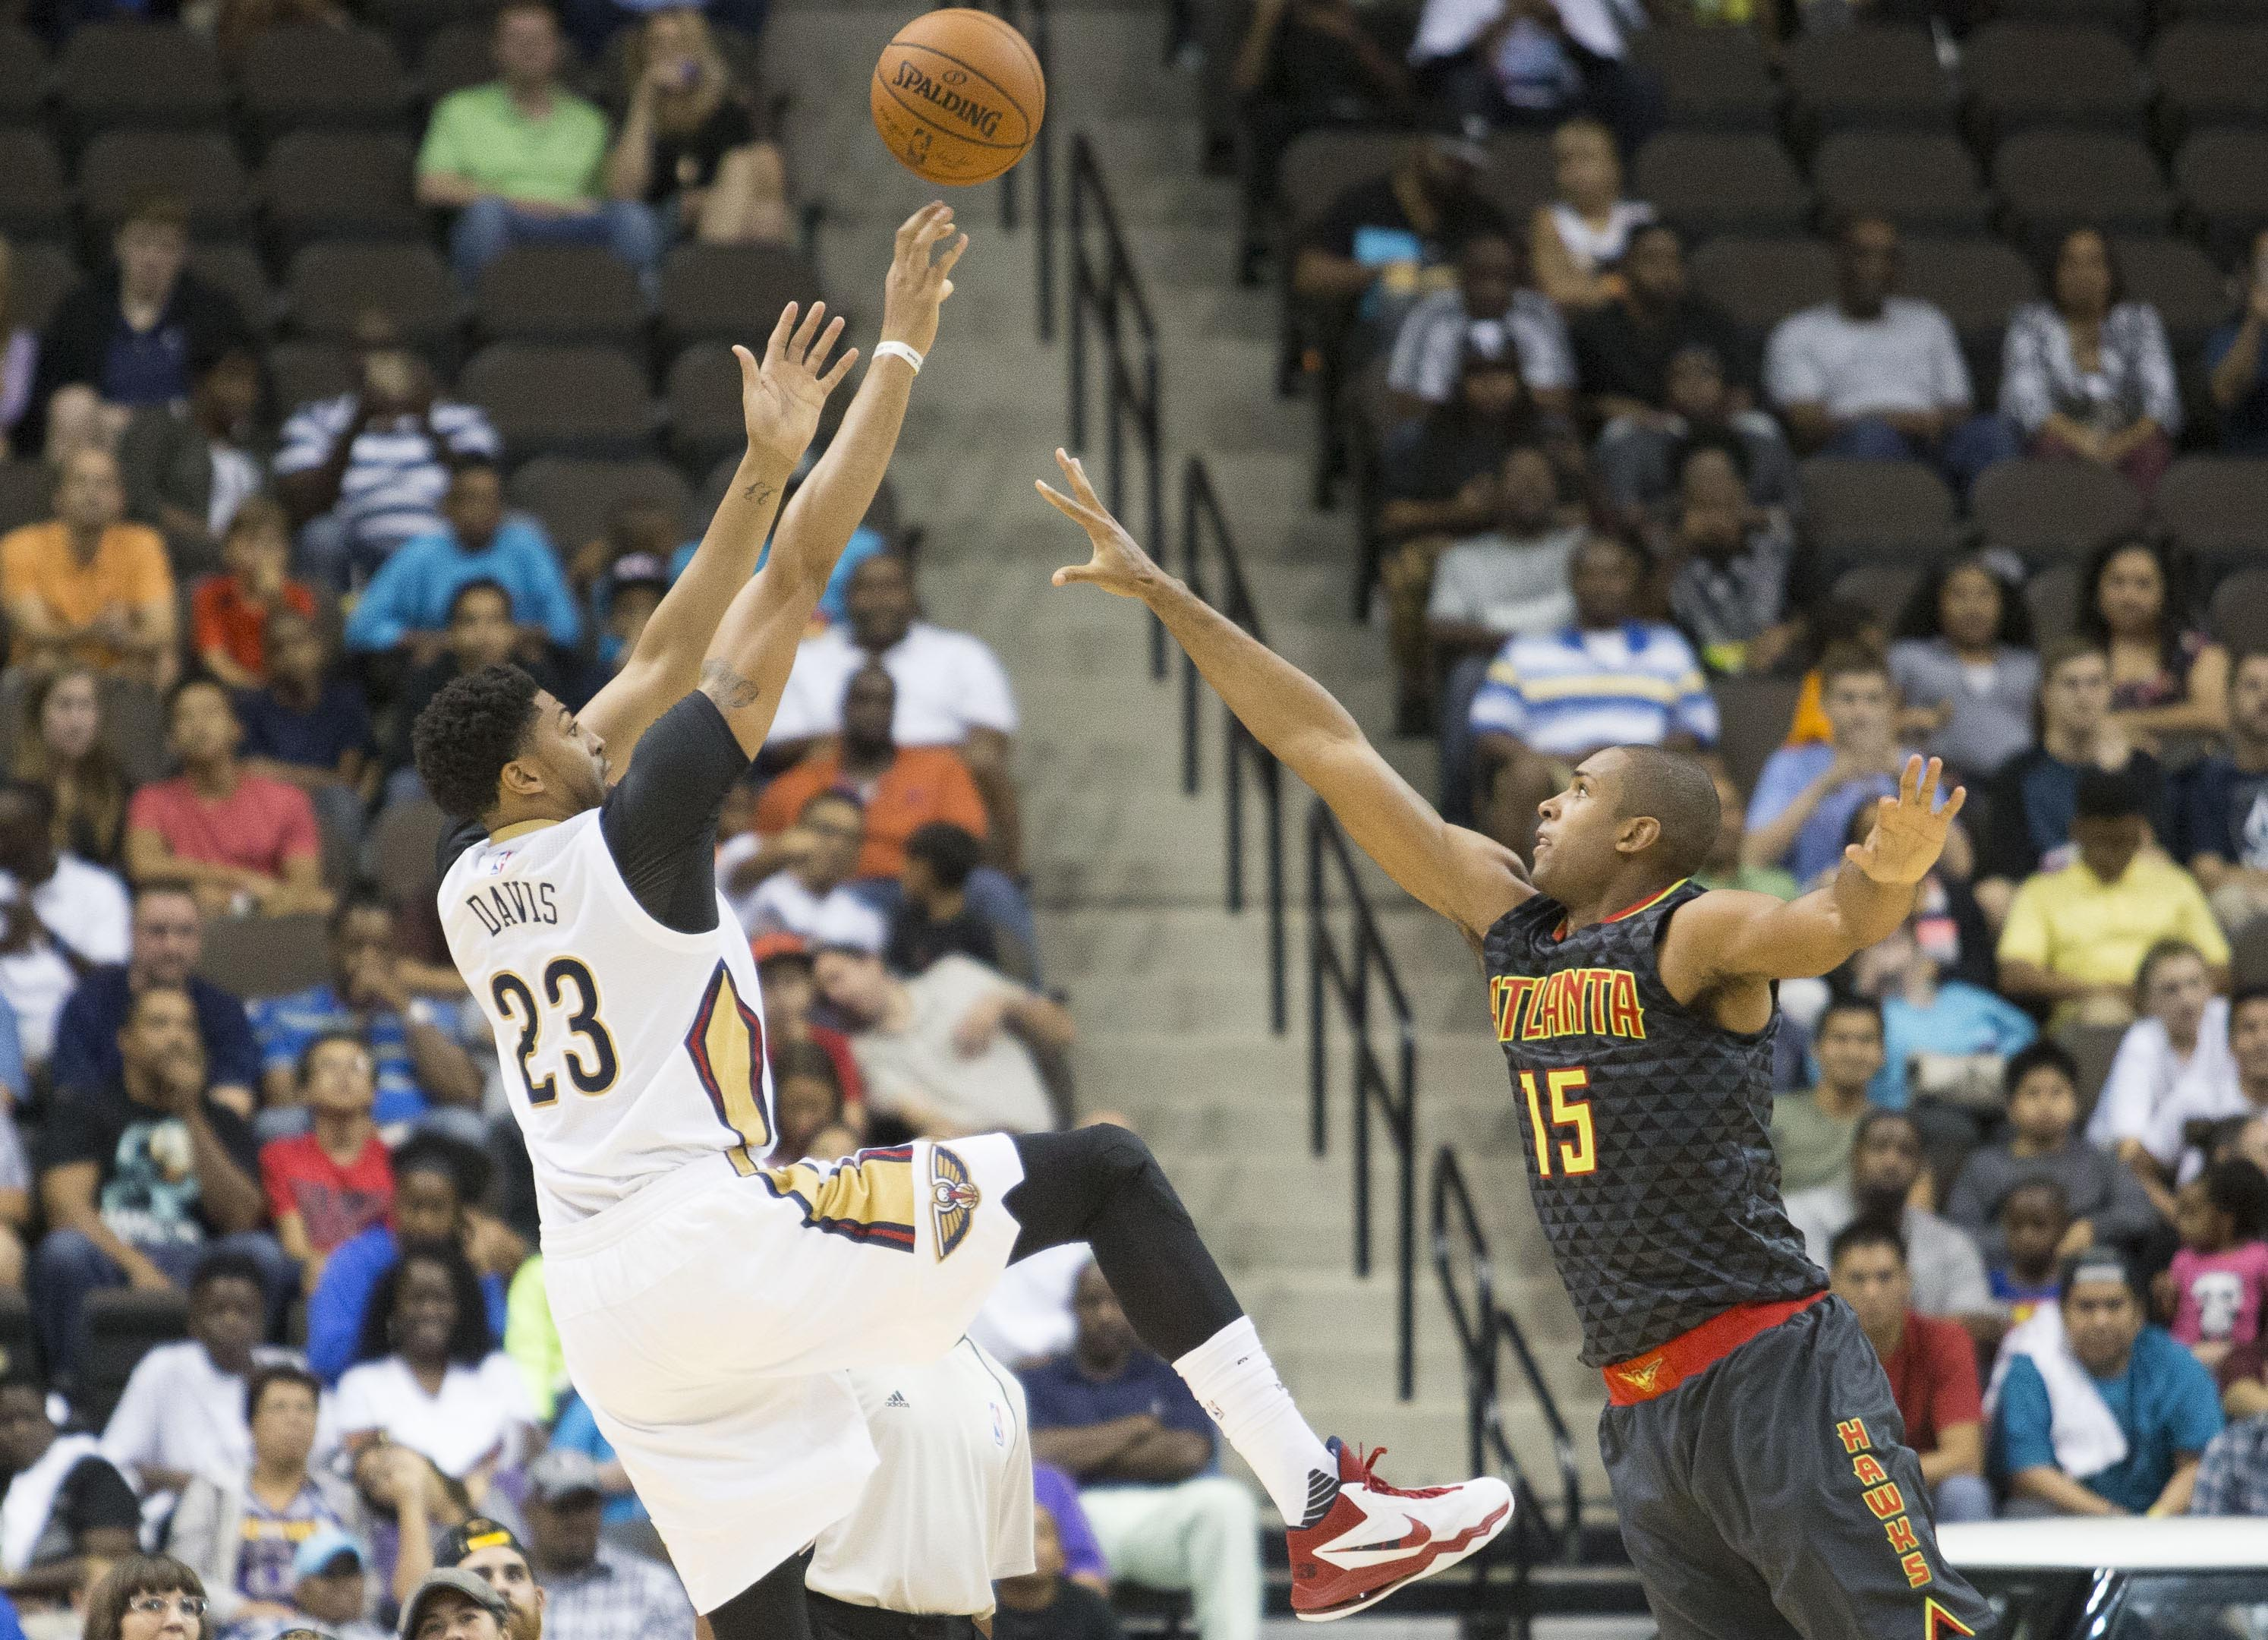 Oct 9, 2015; Jacksonville, FL, USA; New Orleans Pelicans forward Anthony Davis (23) shoots the ball against Atlanta Hawks forward Al Horford (15) during the second quarter at Veterans Memorial Arena. Mandatory Credit: Logan Bowles-USA TODAY Sports